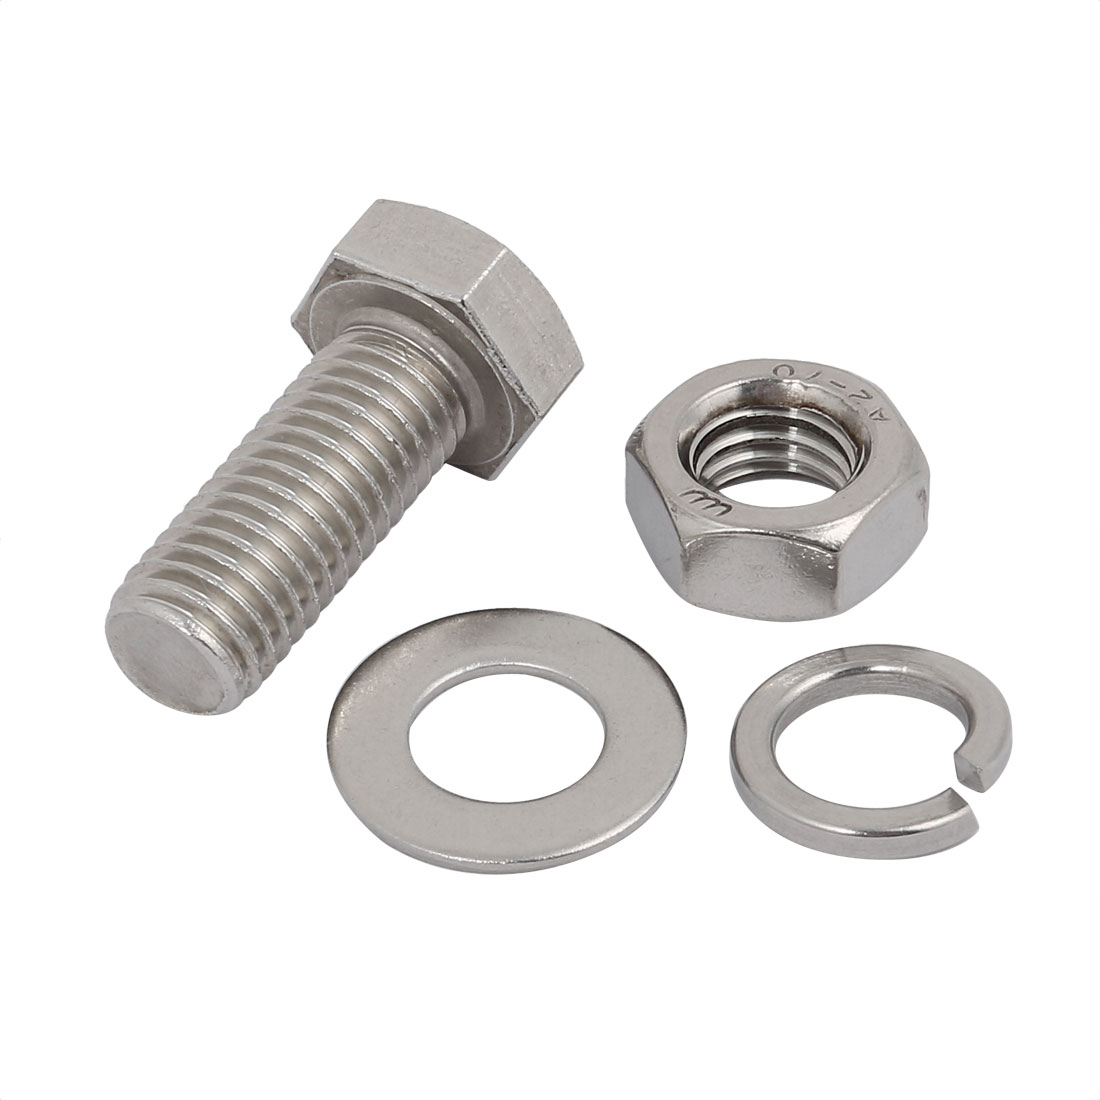 2 Set M14x35mm 304 Stainless Steel Hex Bolts w Nuts and Washers Assortment Kit - image 1 de 2